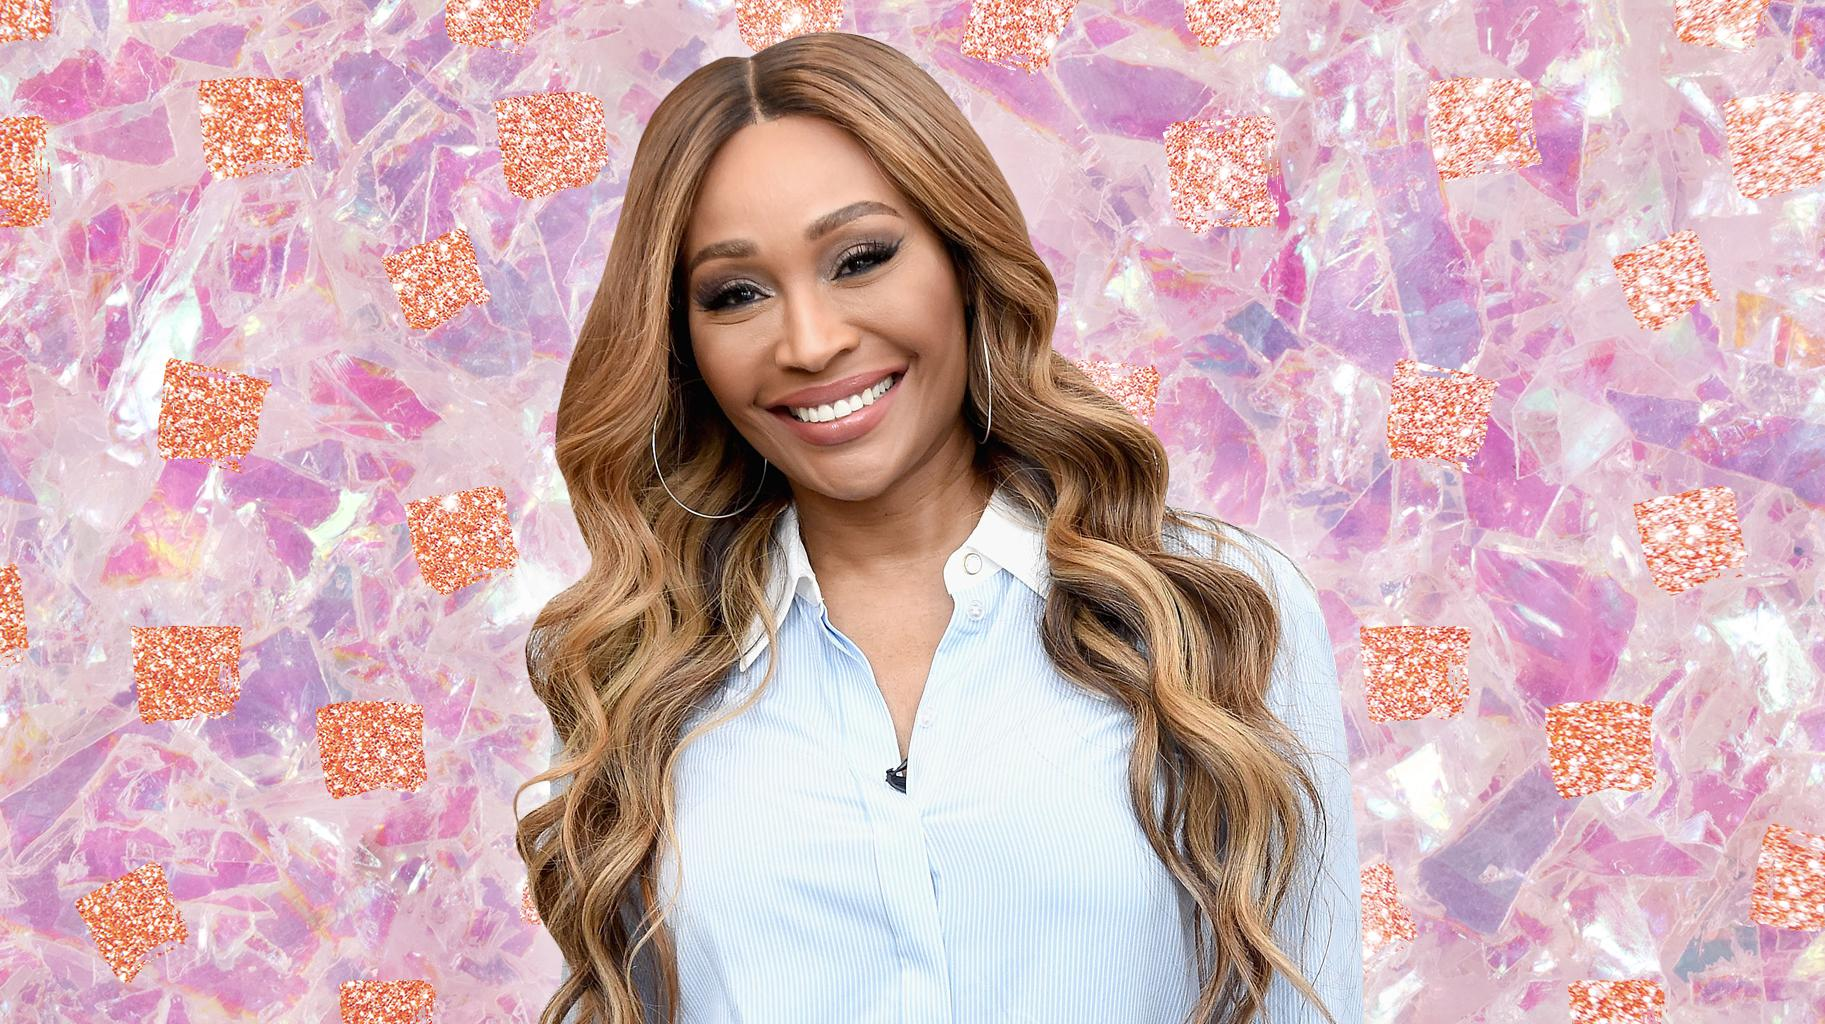 Cynthia Bailey Looks Amazing In This Vividly-Colored Outfit